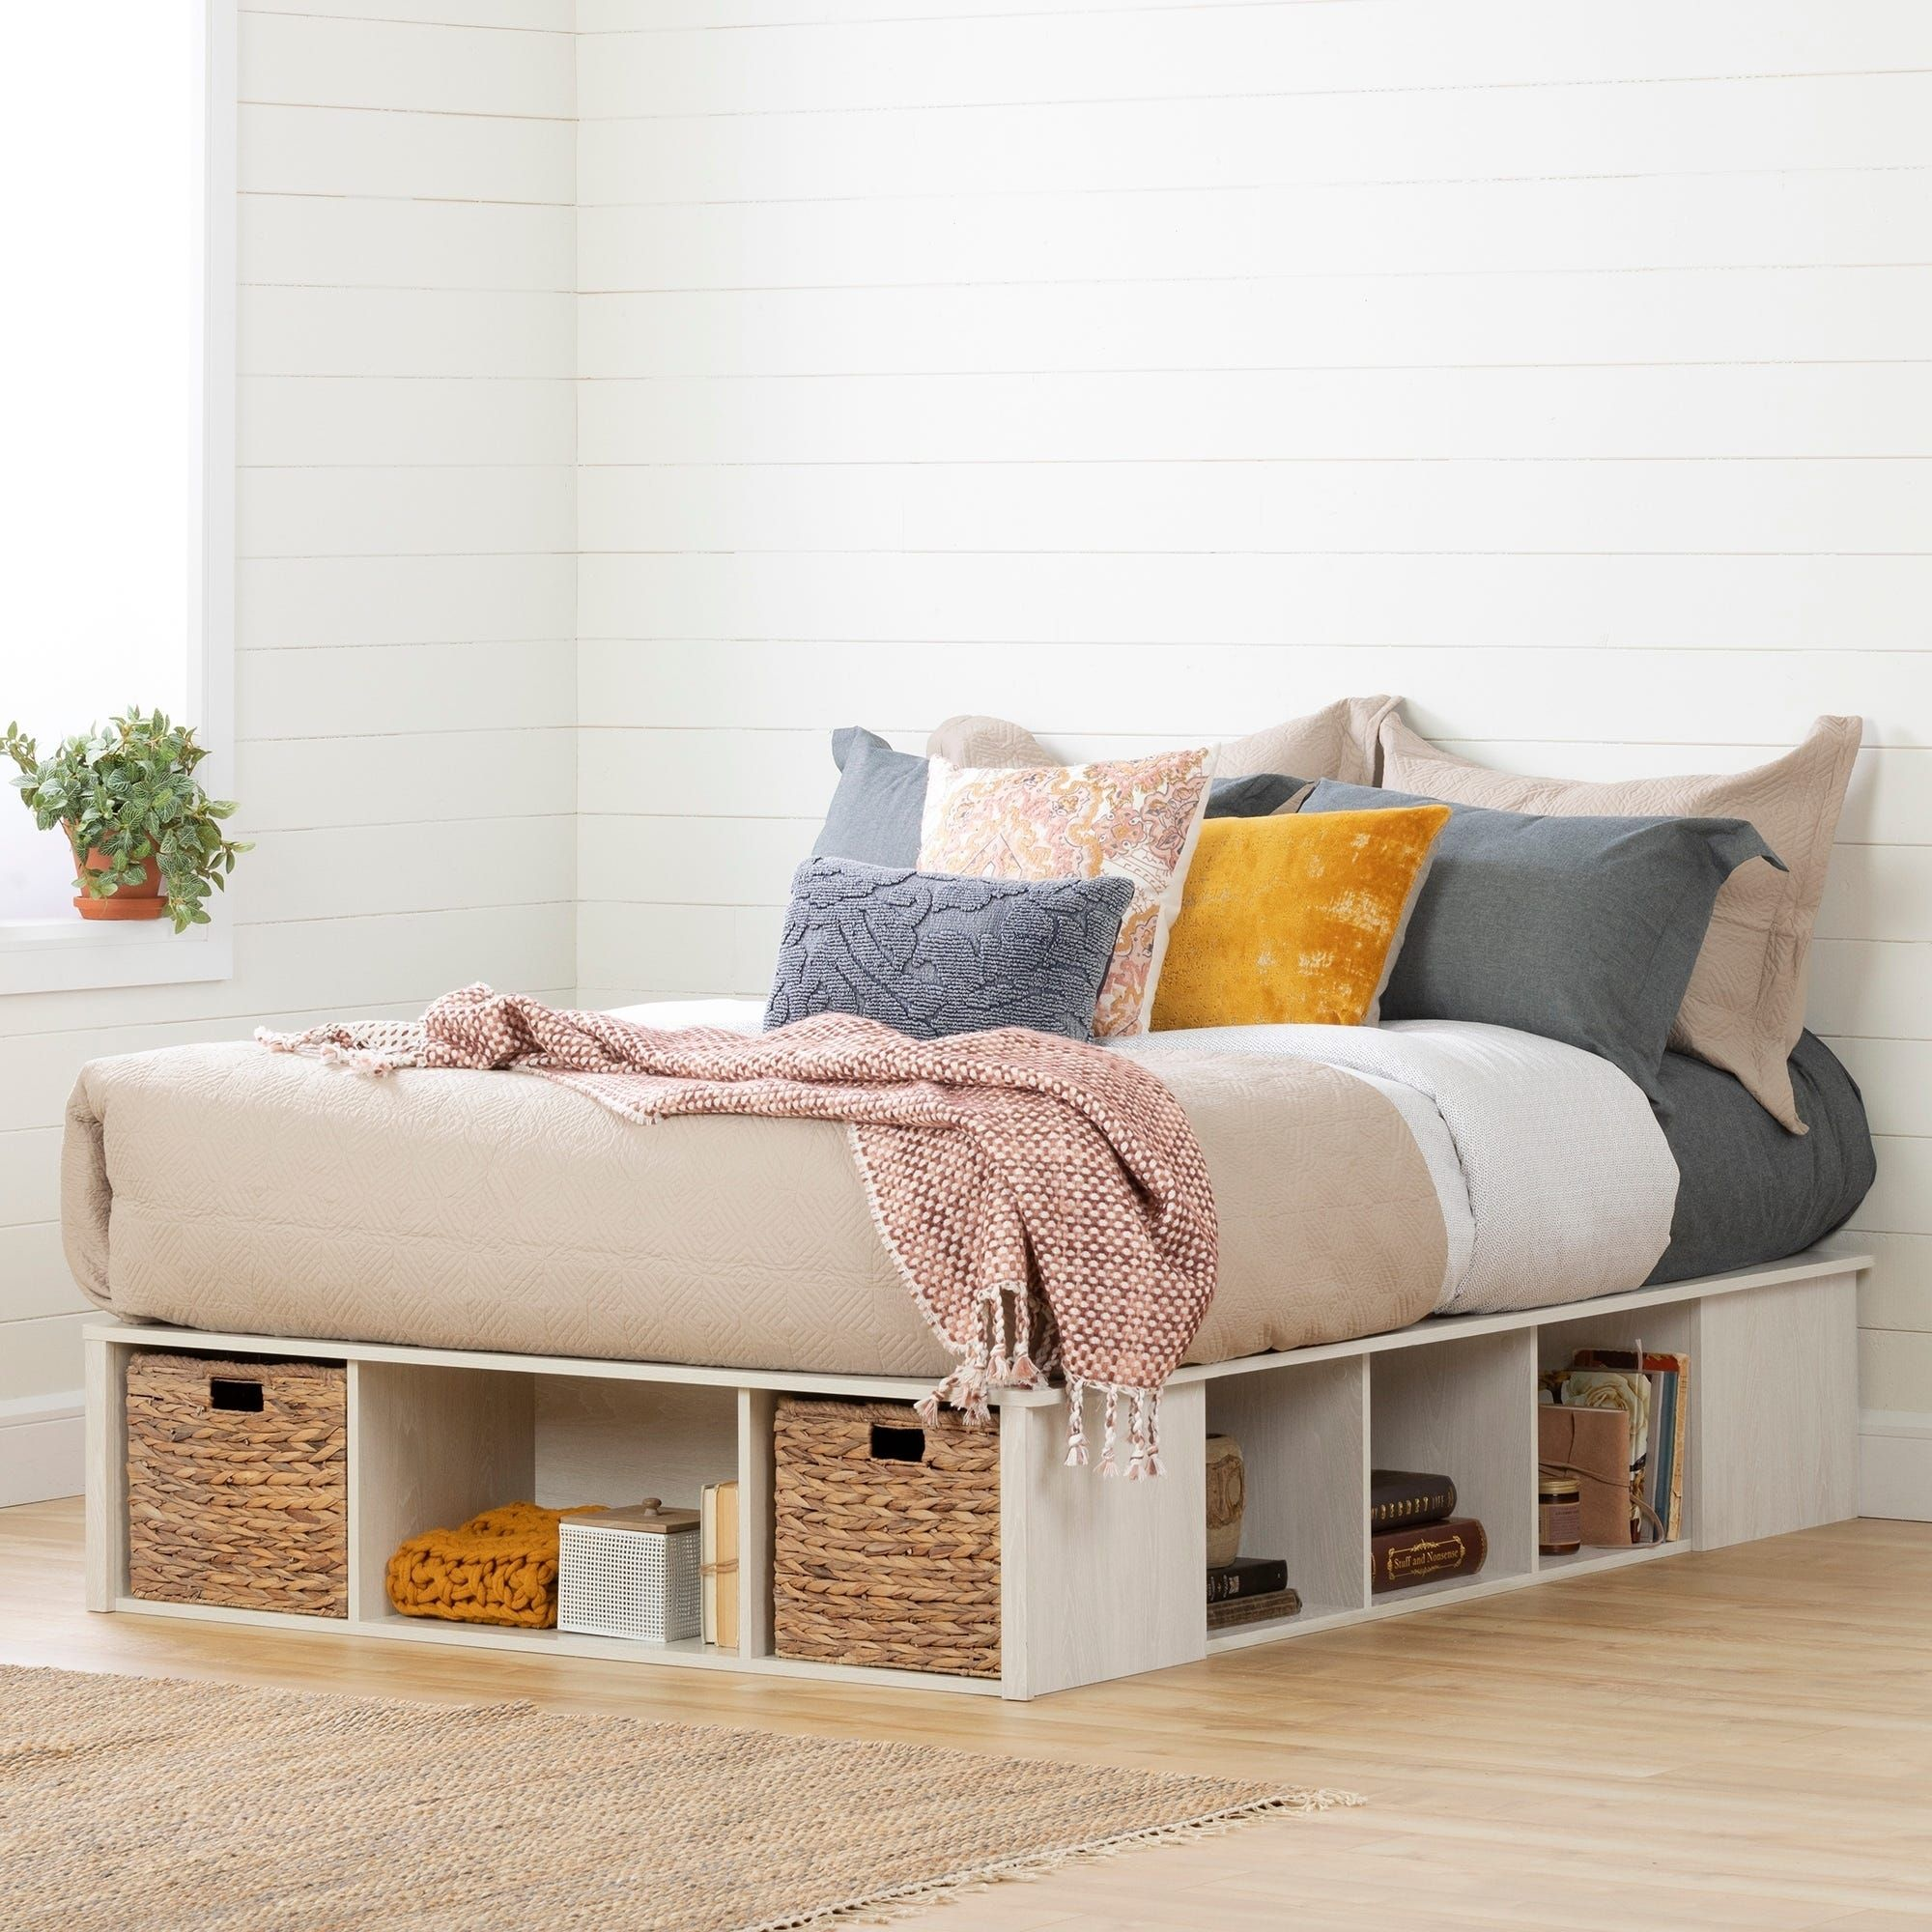 Buy Full Size Beds Online at Overstock Our Best Bedroom